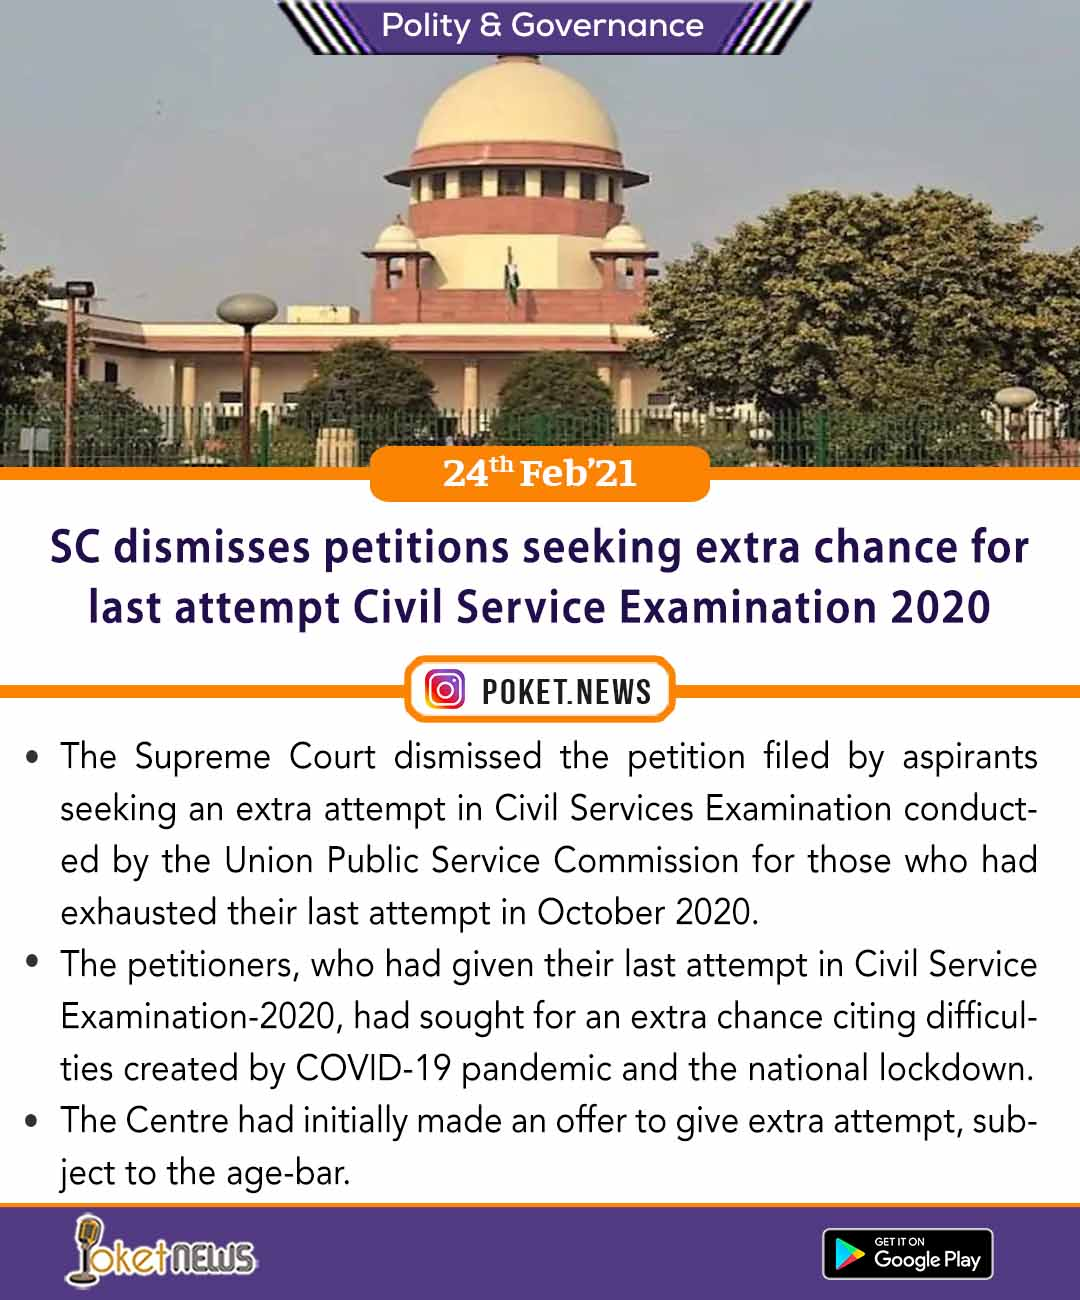 SC dismisses petitions seeking extra chance for last attempt Civil Service Examination 2020